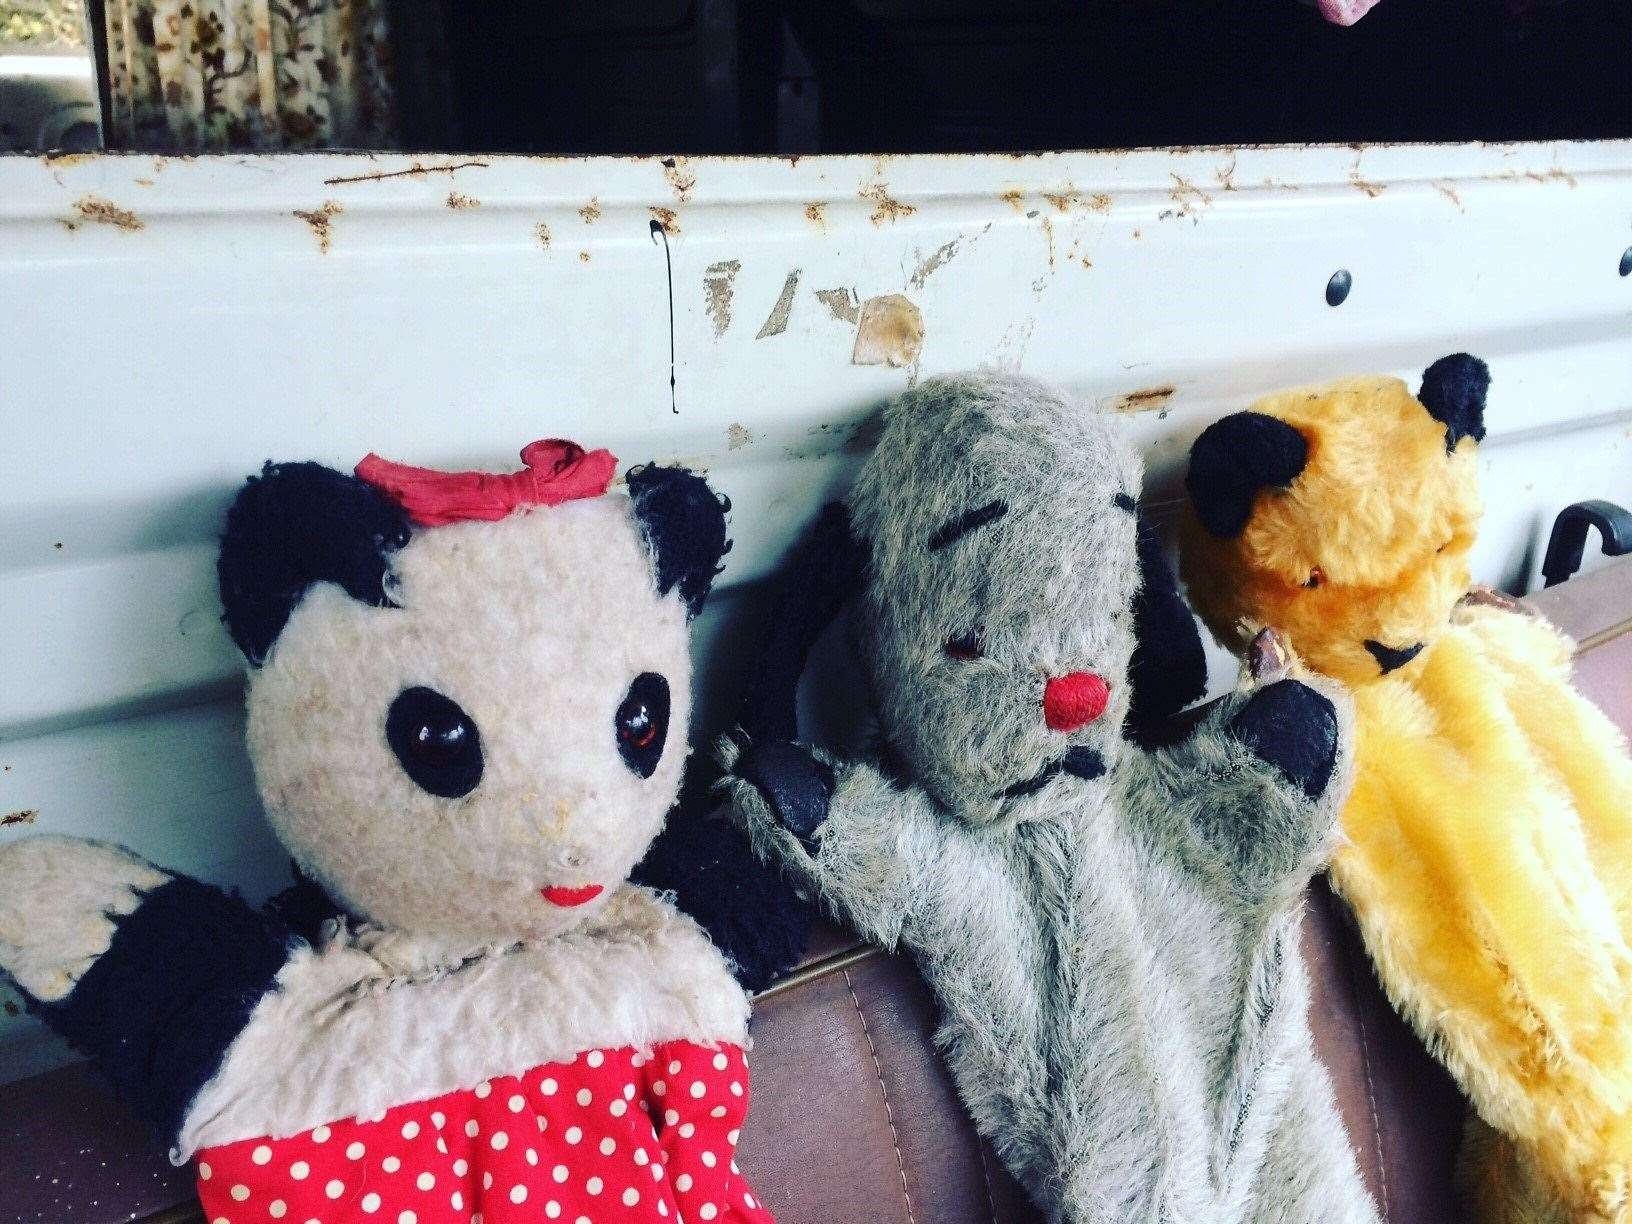 Vintage puppets Sooty, Sweep and Soo, given to a Yorkshire family by Harry Corbett, will also go under the hammer (21698940)